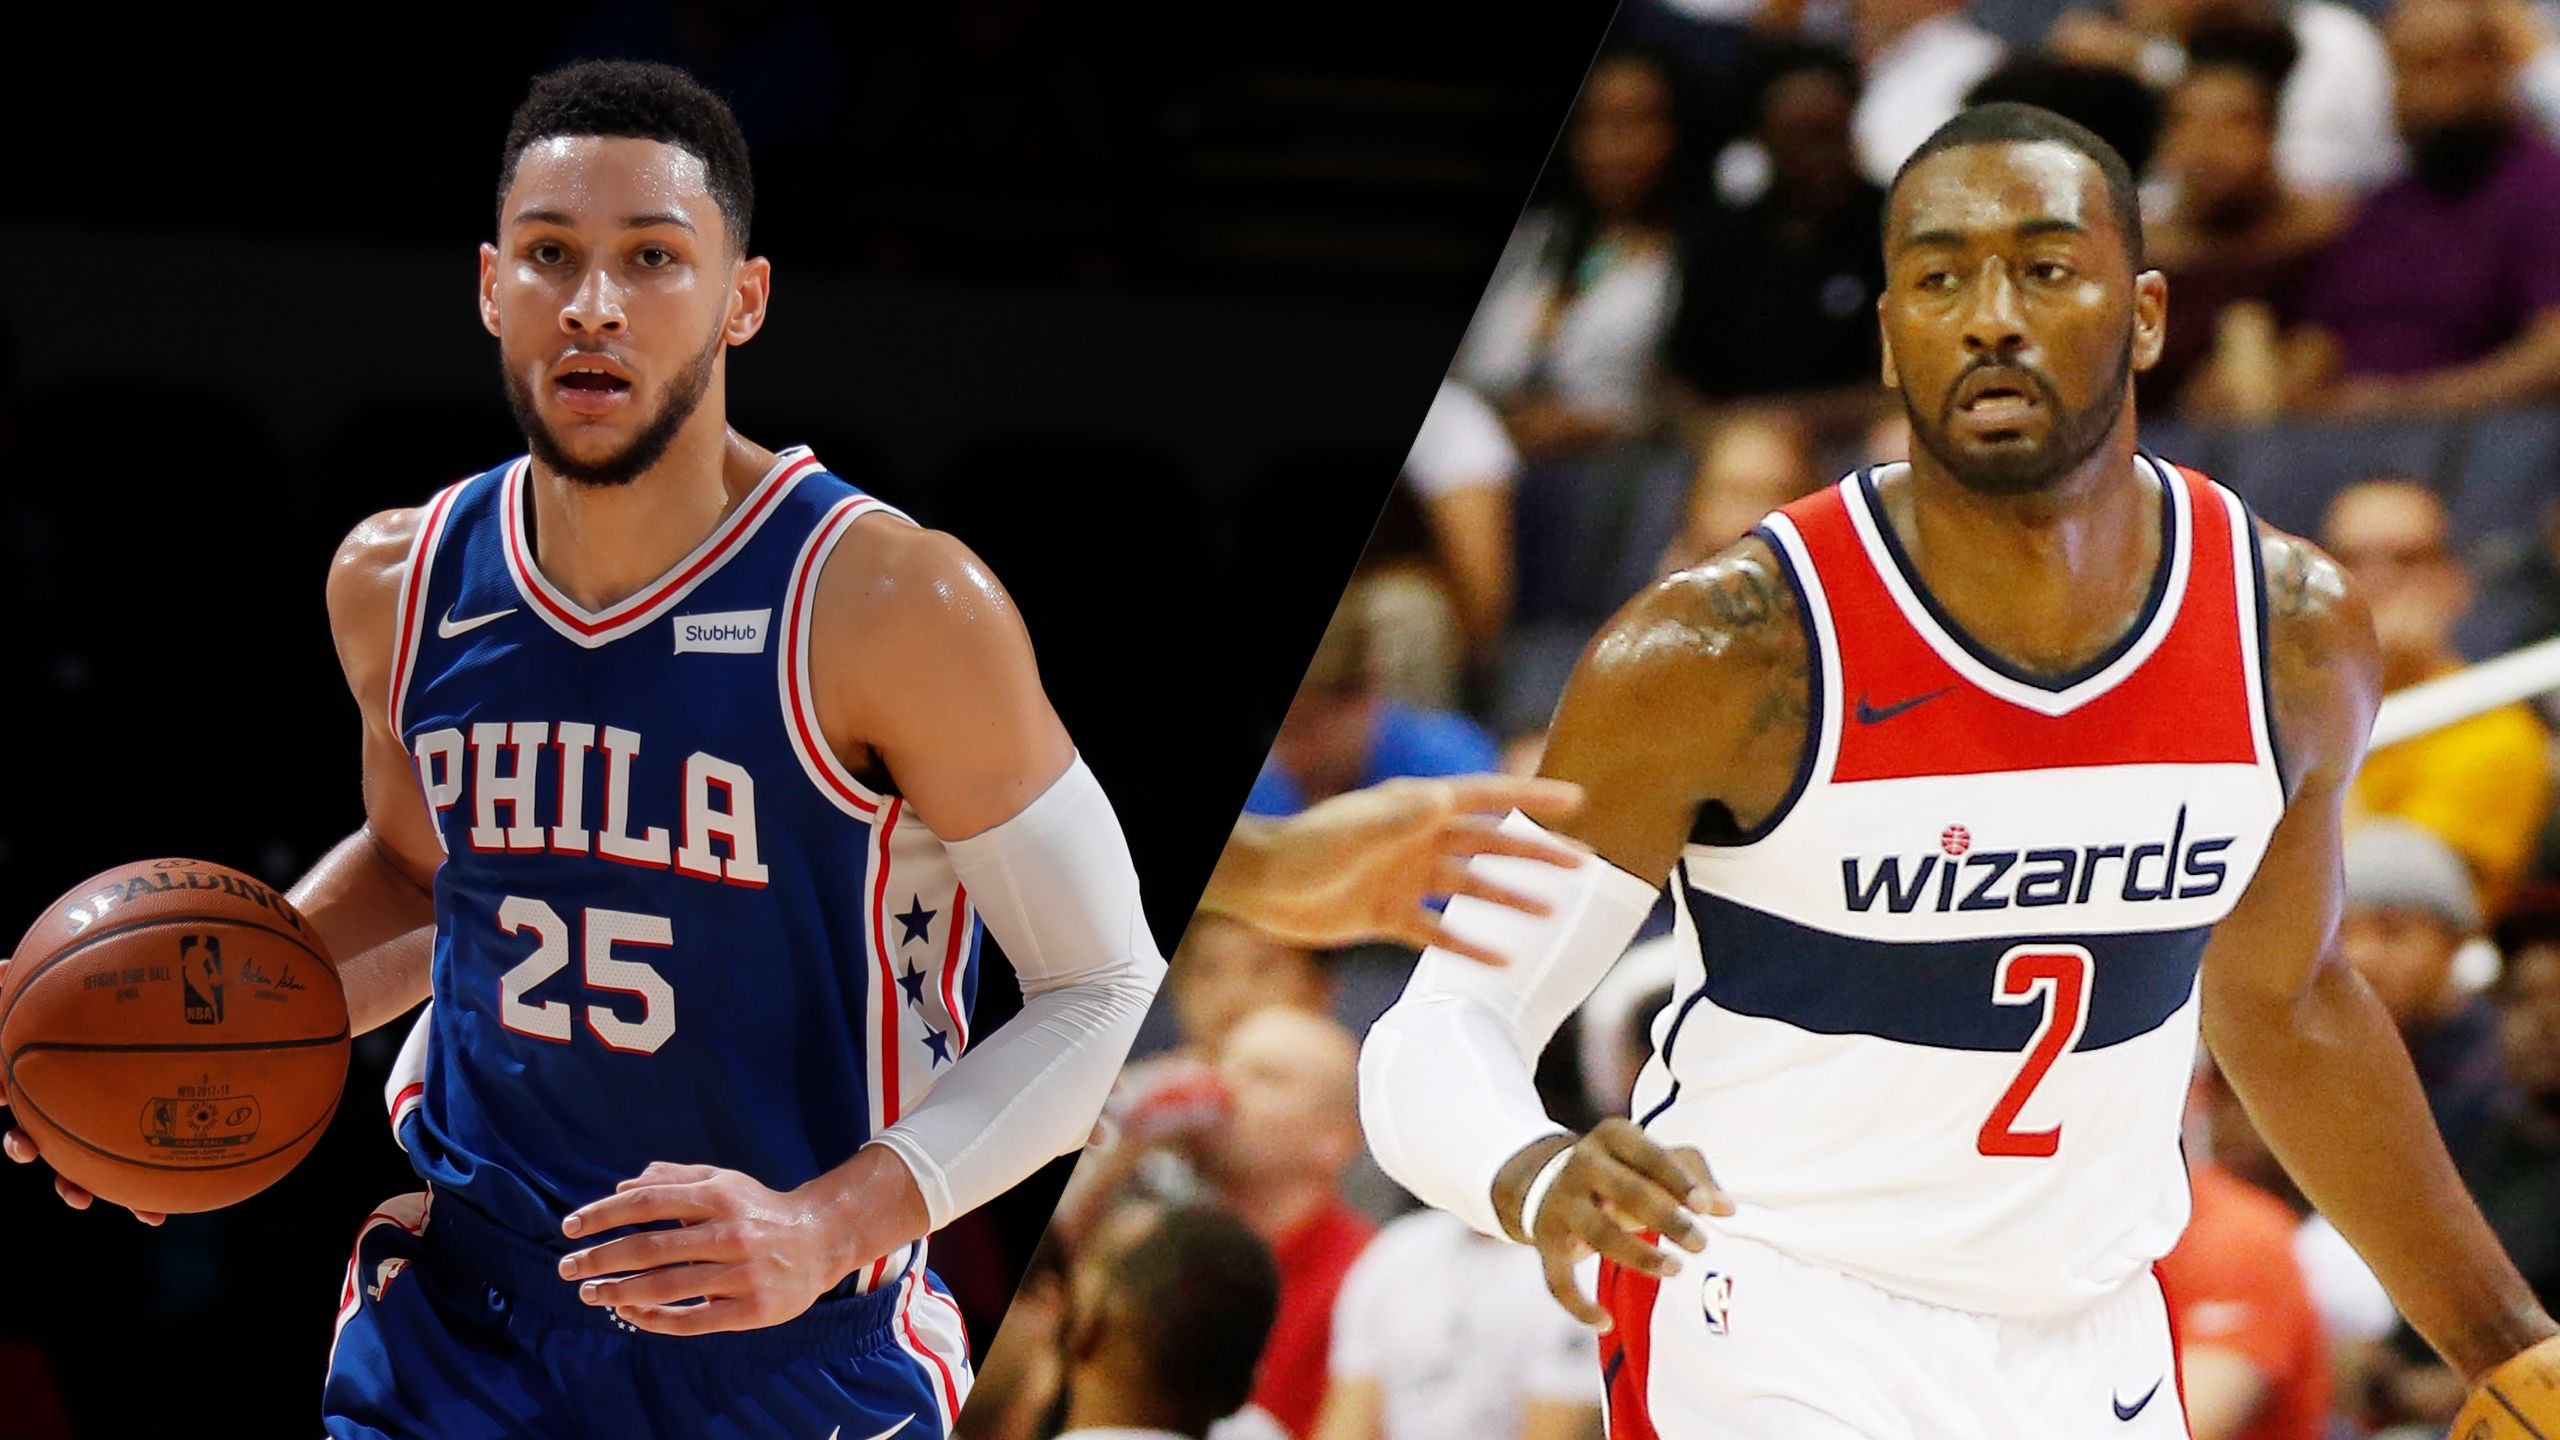 Philadelphia 76ers vs. Washington Wizards (re-air)